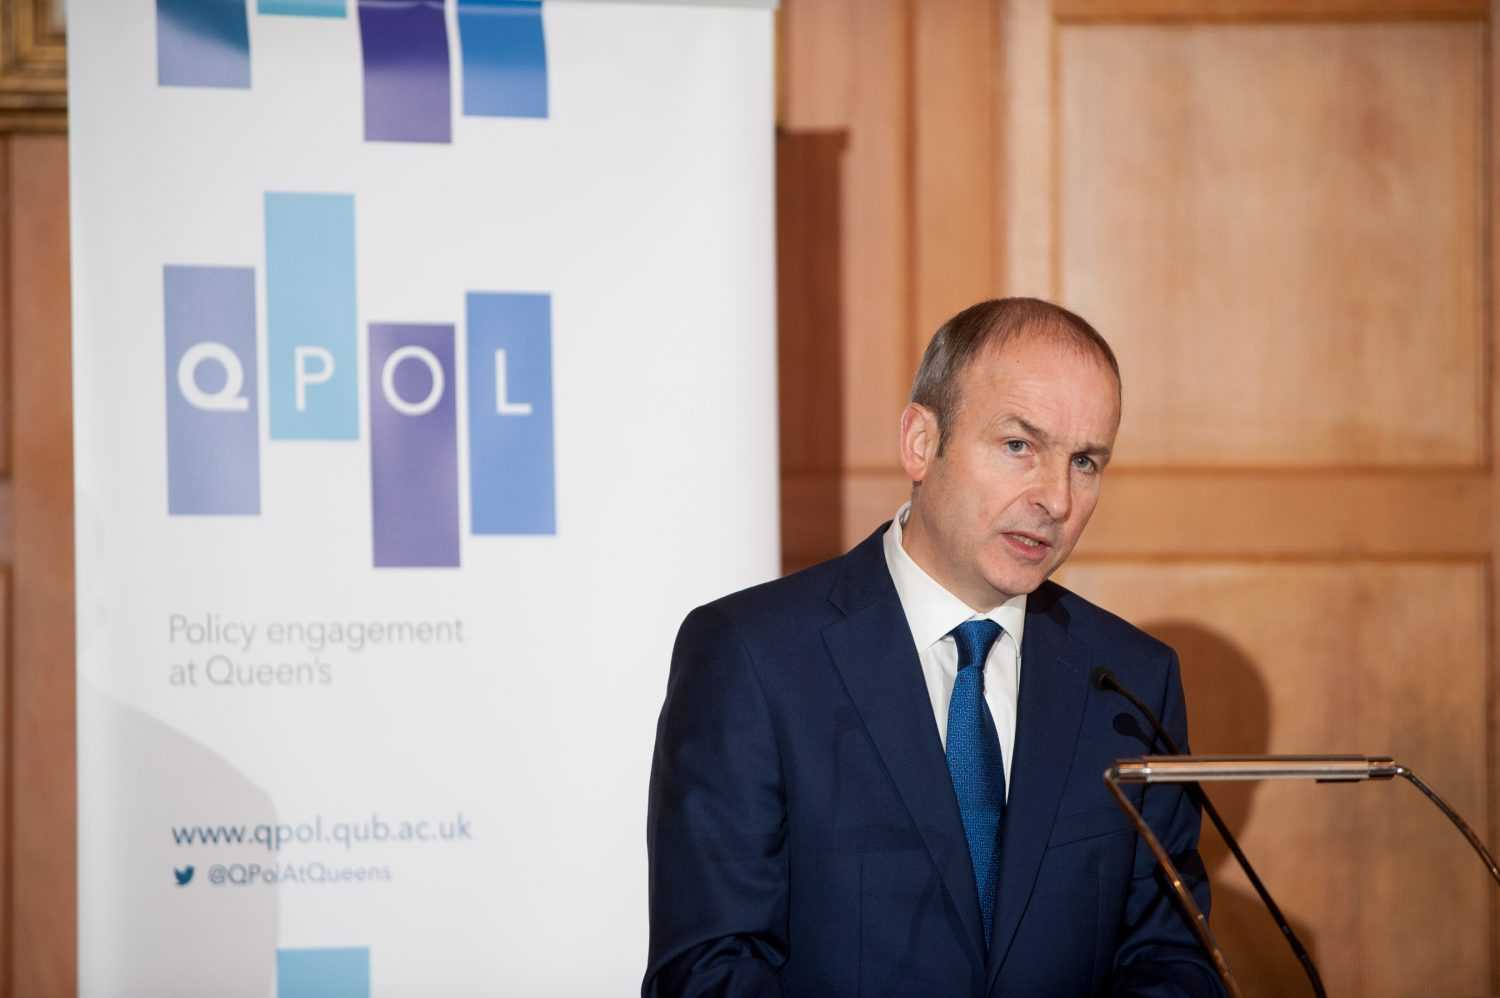 Micheál Martin TD Speaks at Queen's on Brexit